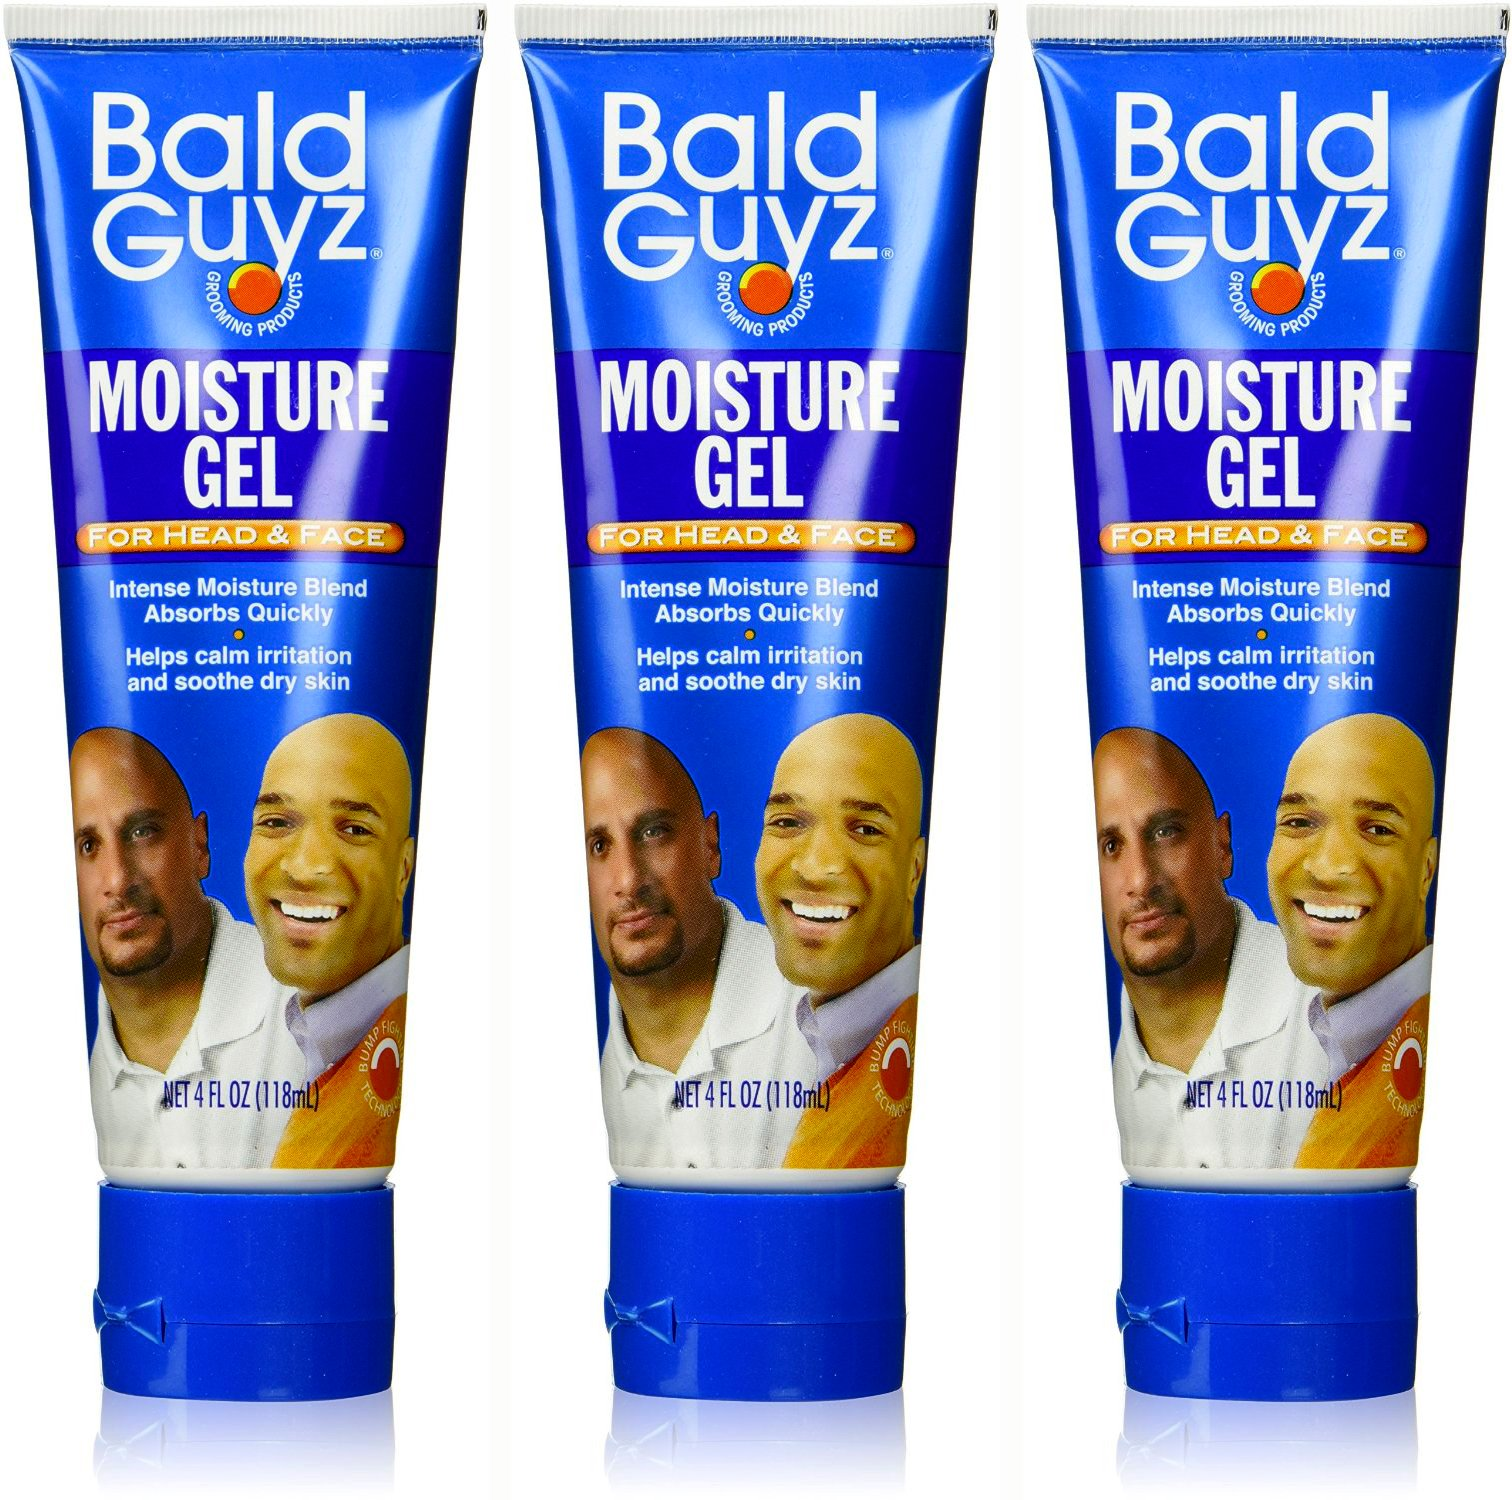 Bald Guyz Moisture Gel, 4 fl oz (Pack of 3)